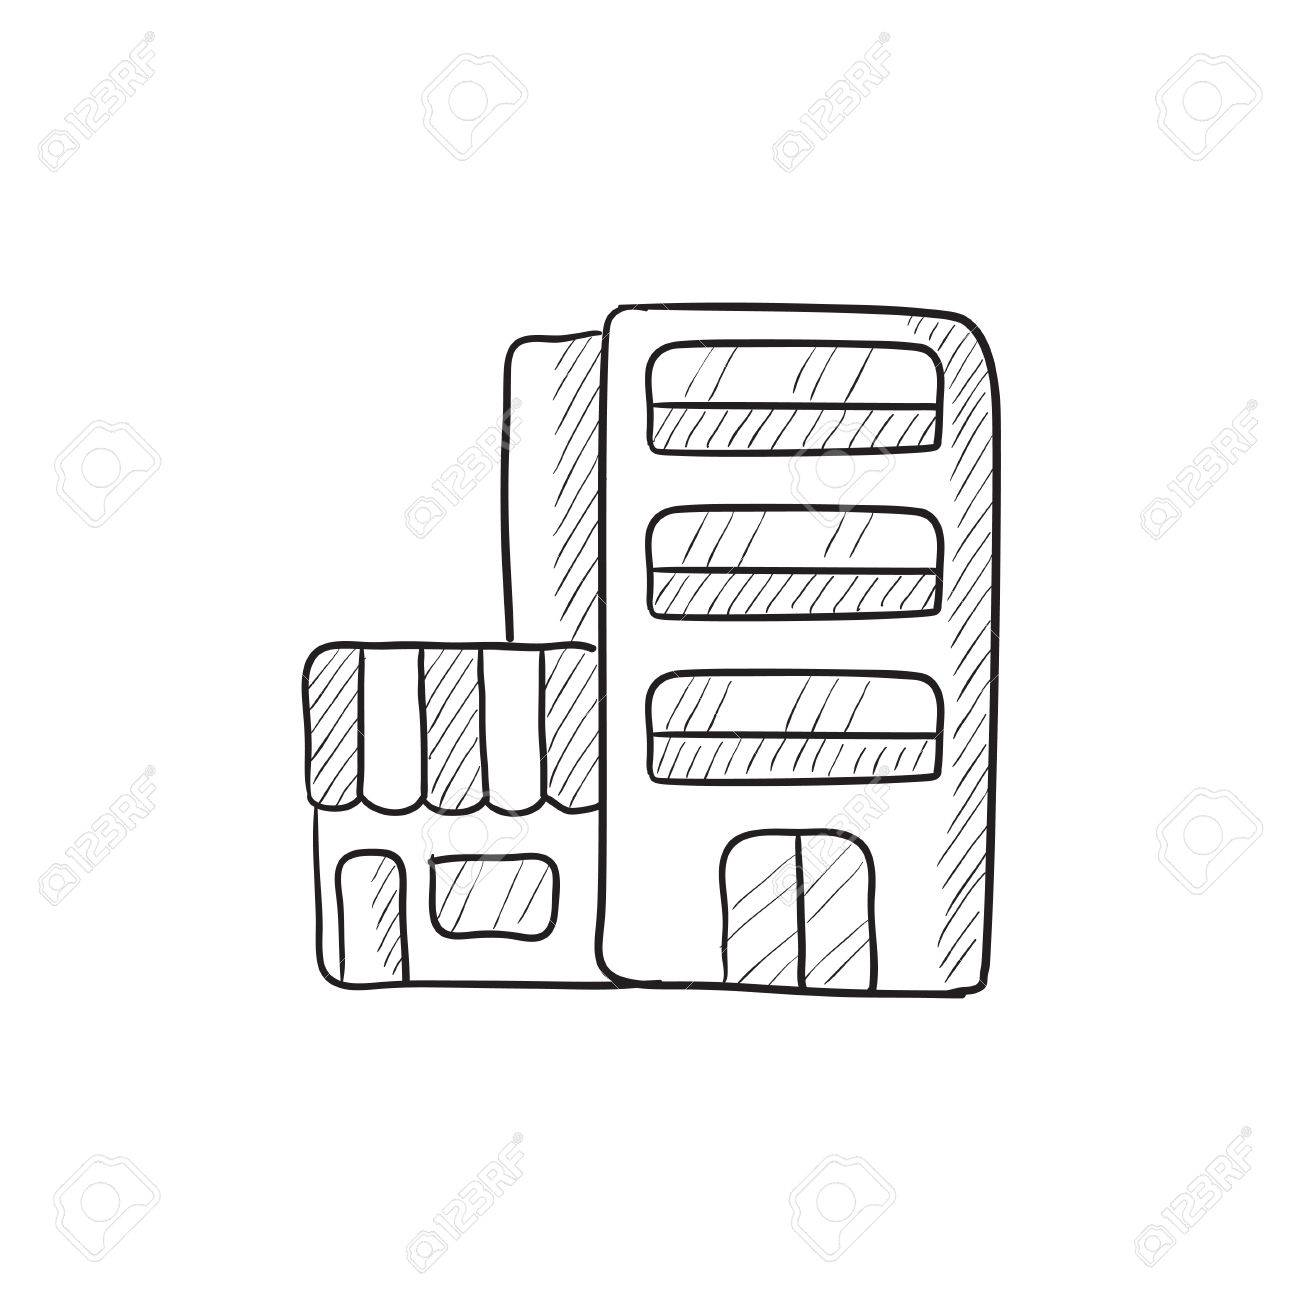 1300x1300 Hotel Building Vector Sketch Icon Isolated On Background. Hand